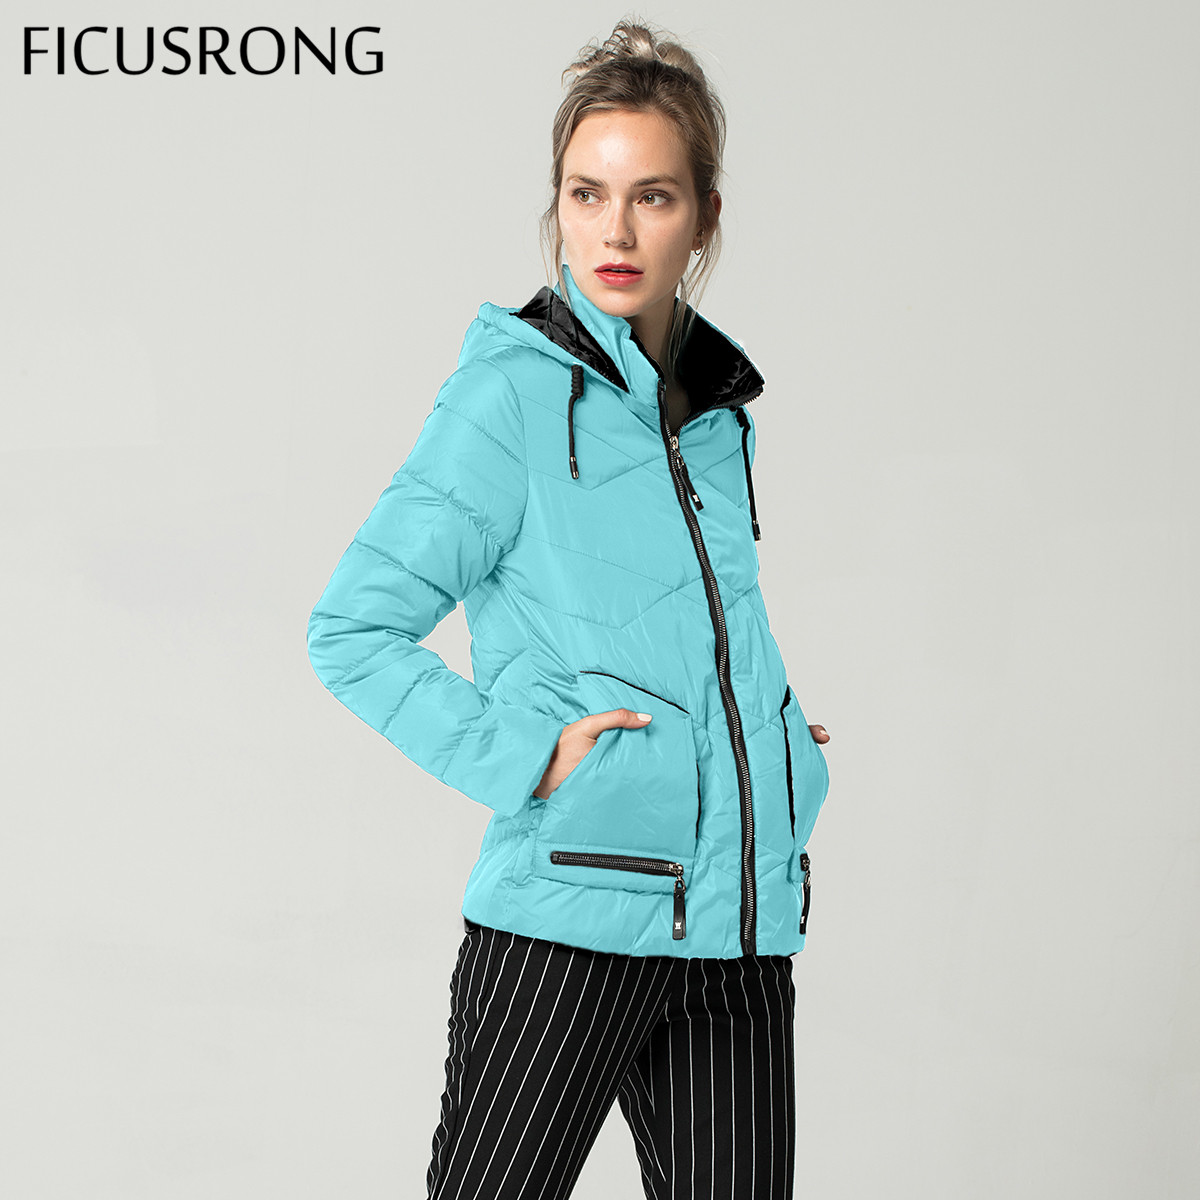 FICUSRONG 2018 New Fashion Slim Cotton Padded   Basic     Jacket   Female Autumn Winter   Jacket   Women Outerwear Womens Hooded Coats Tops